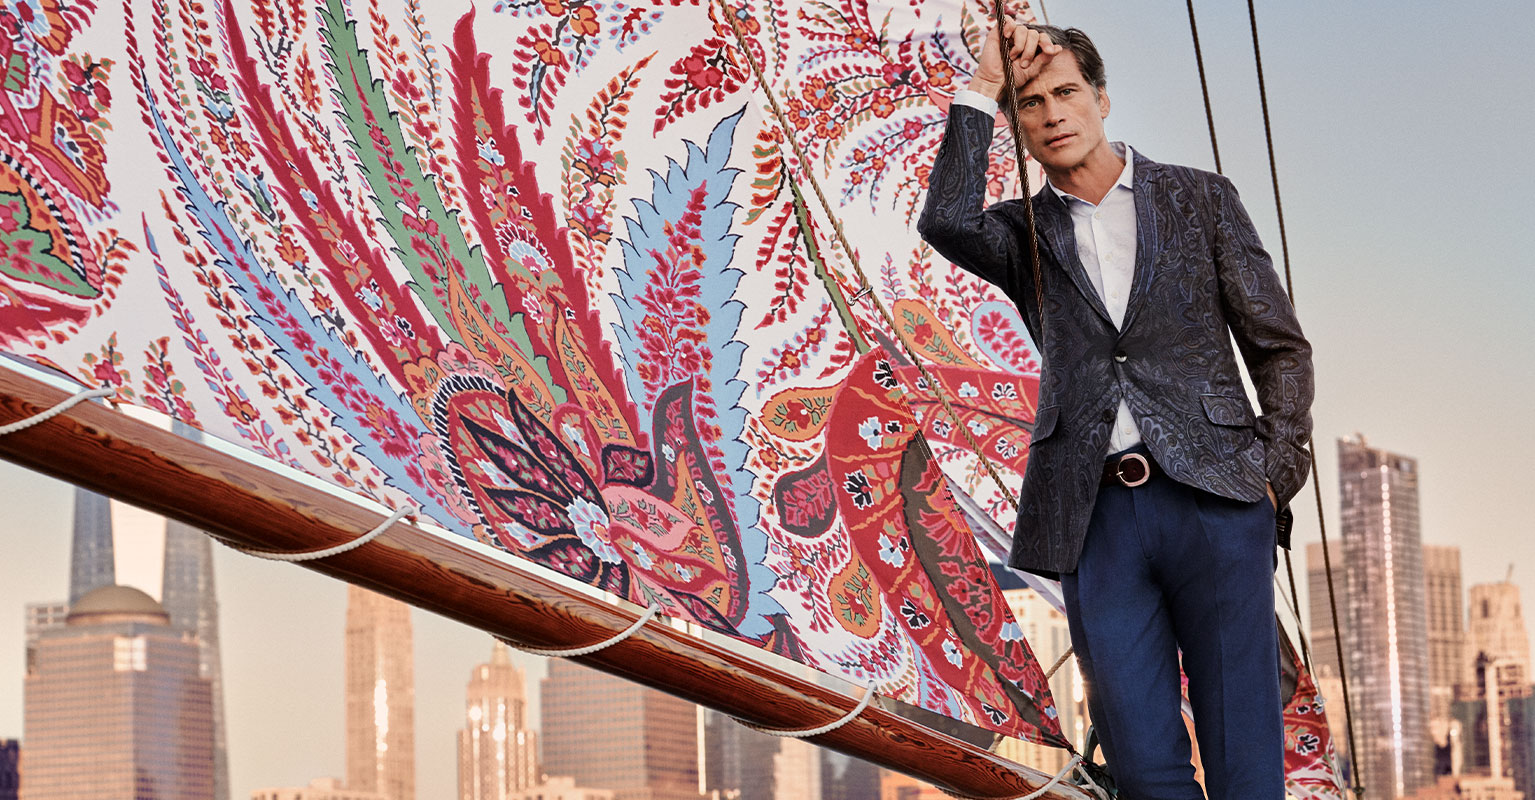 ETRO_SPRING-SUMMER 2020 ADVERTISING CAMPAIGN